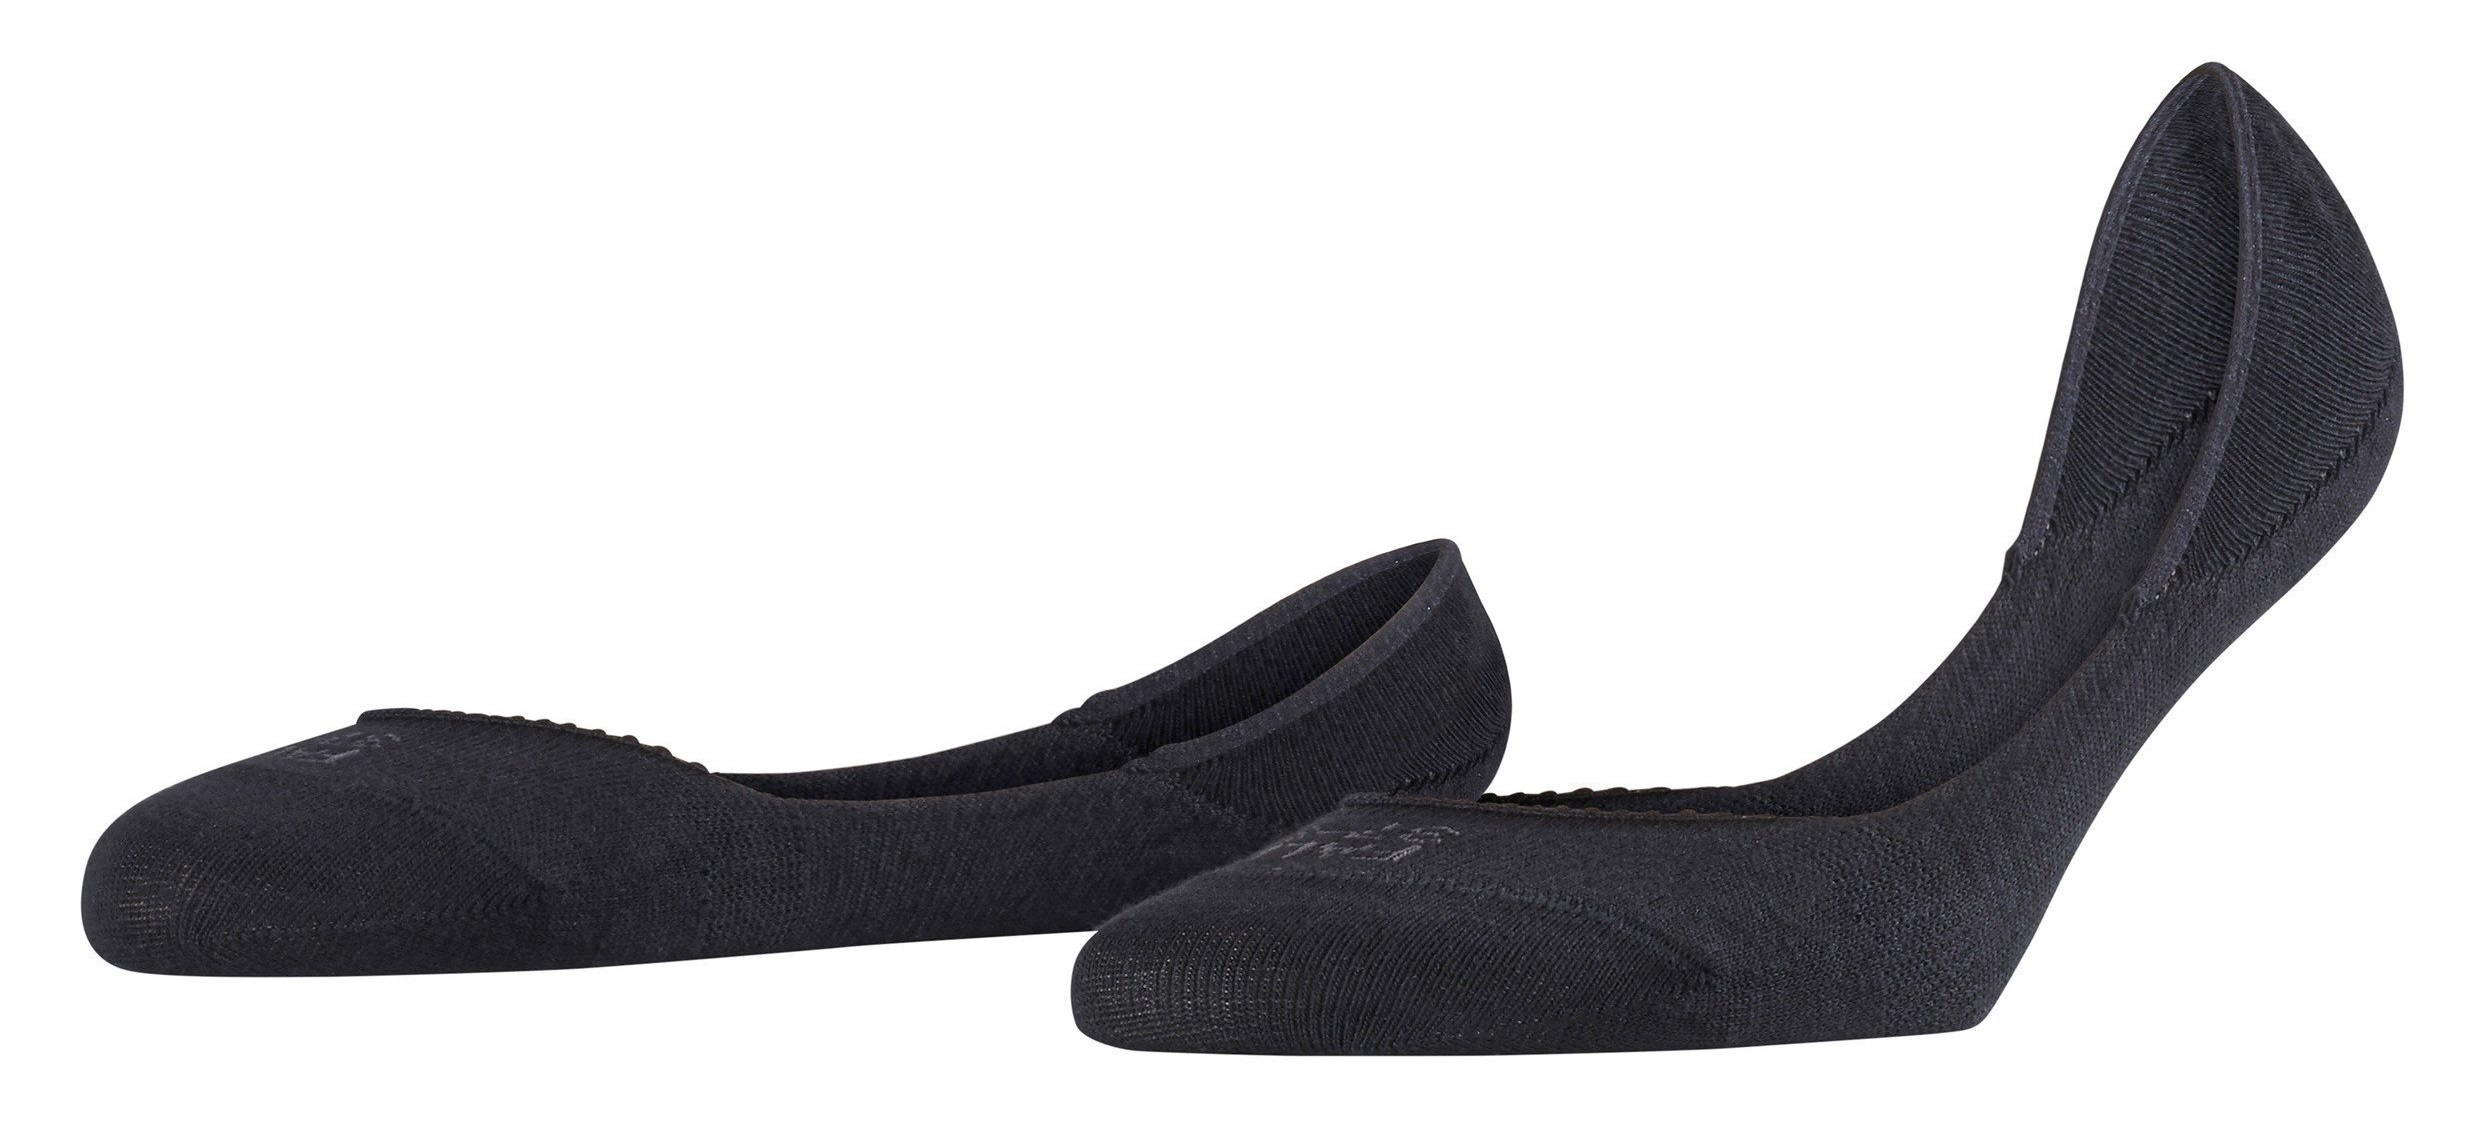 Chaussette invisible ballerines